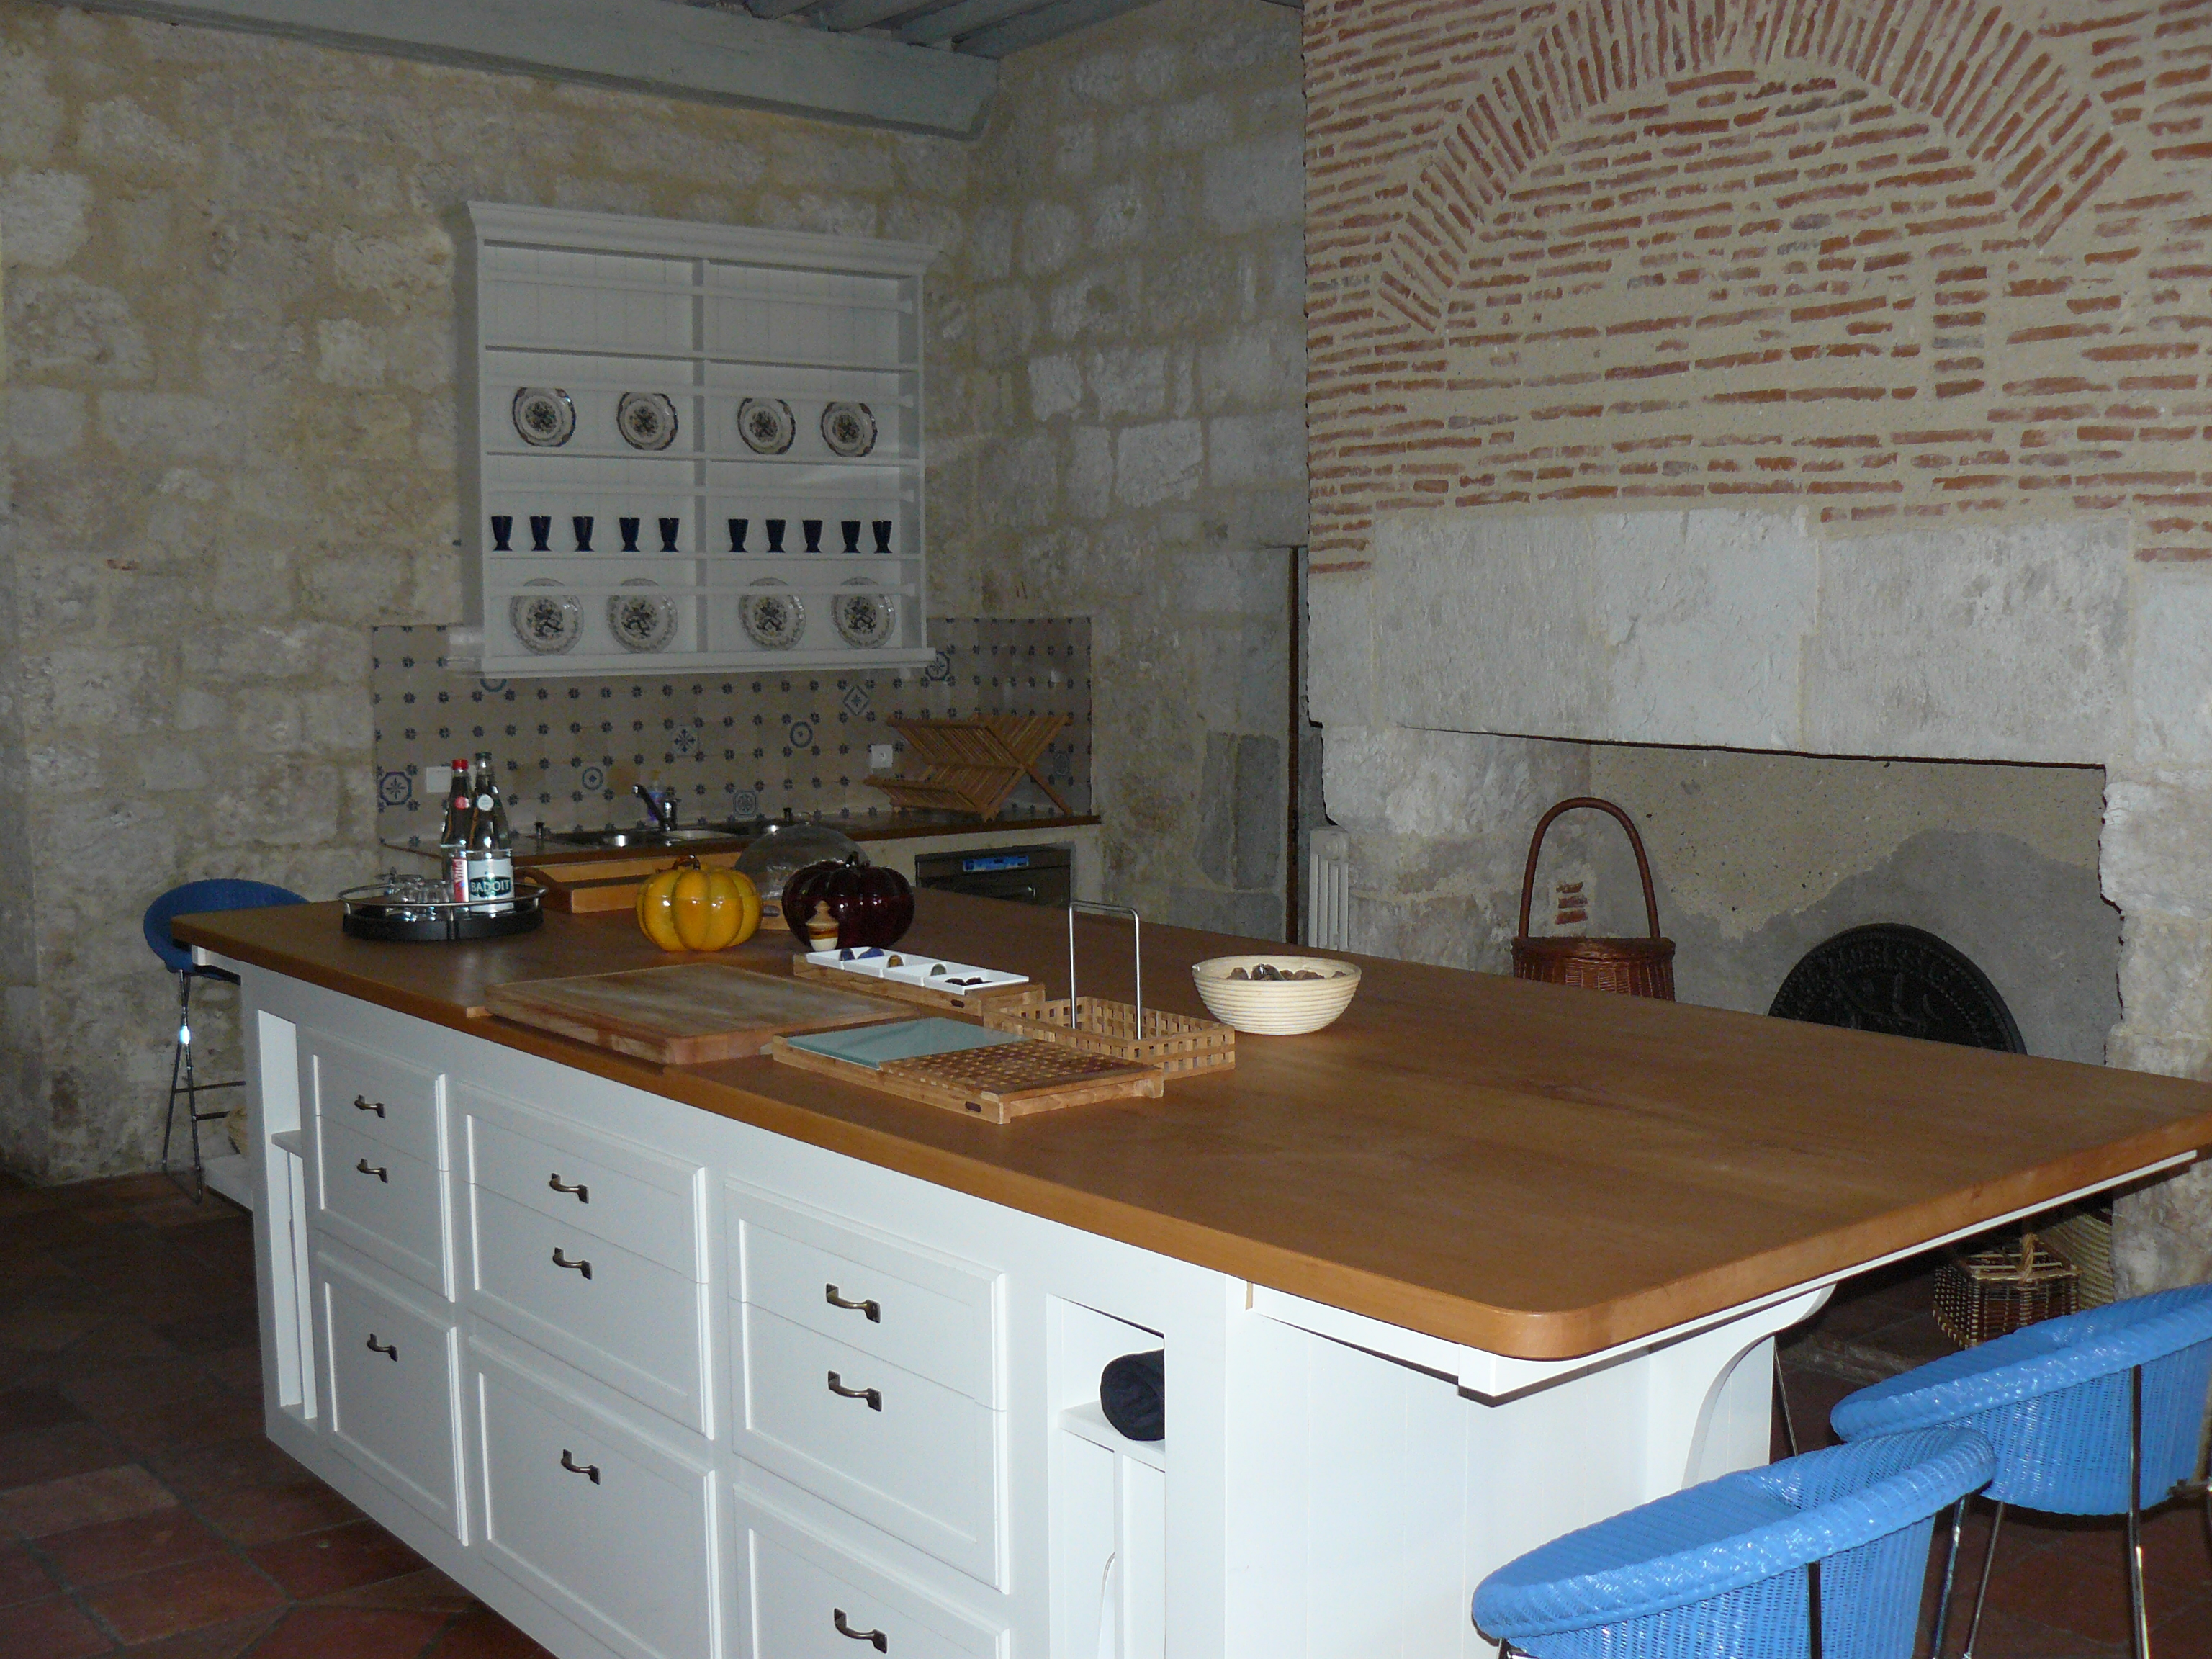 Lot central l 39 atelier de doroth e - Ilot central cuisine bois ...